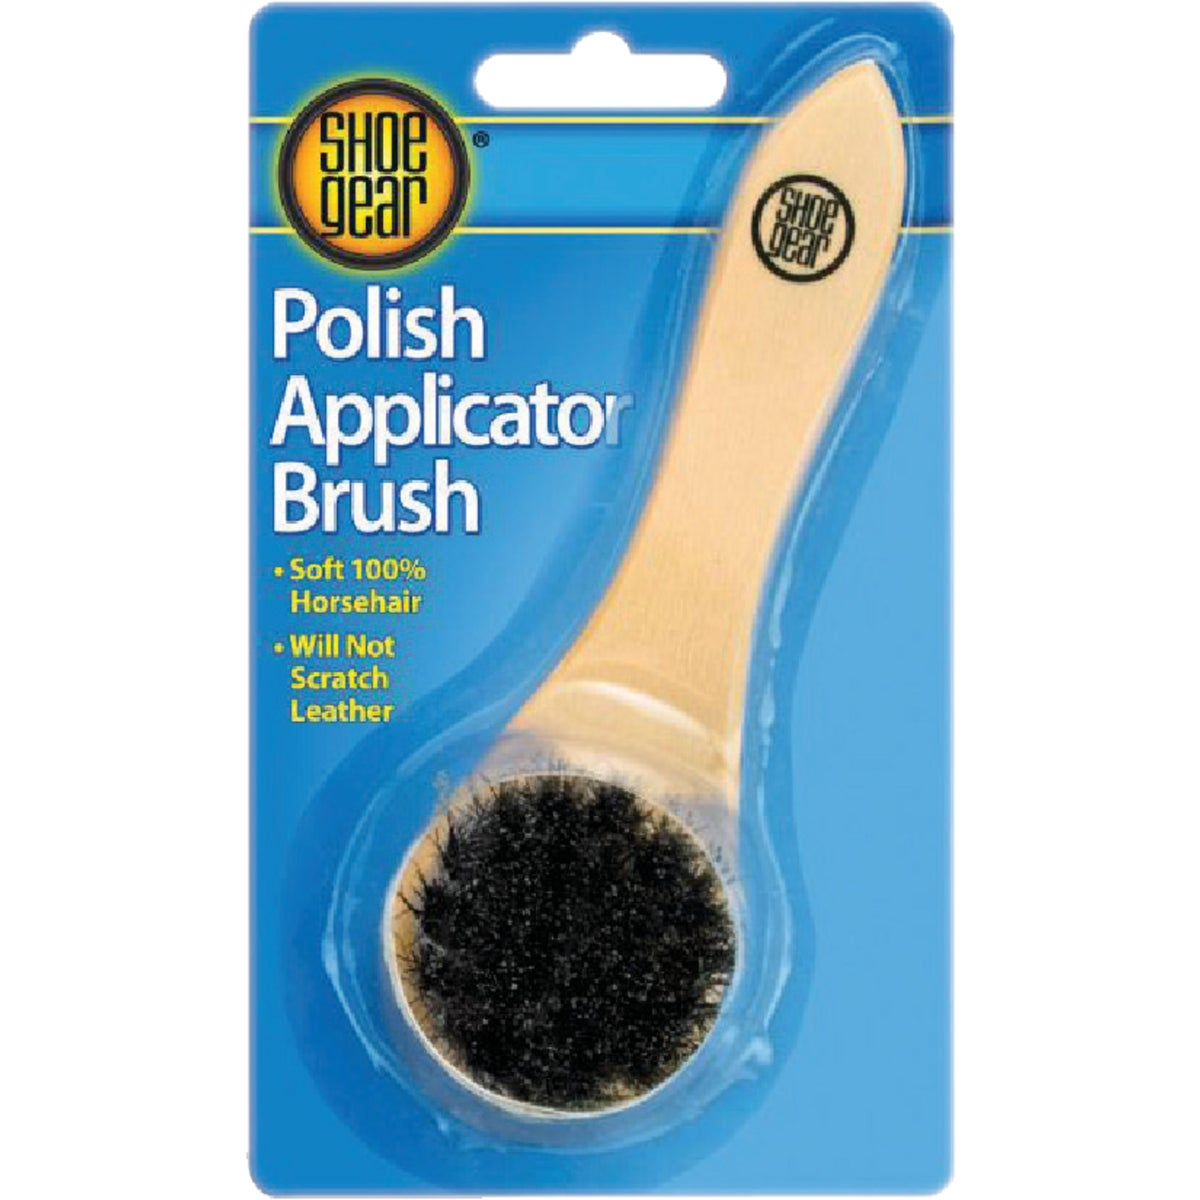 POLISH APPLICATOR